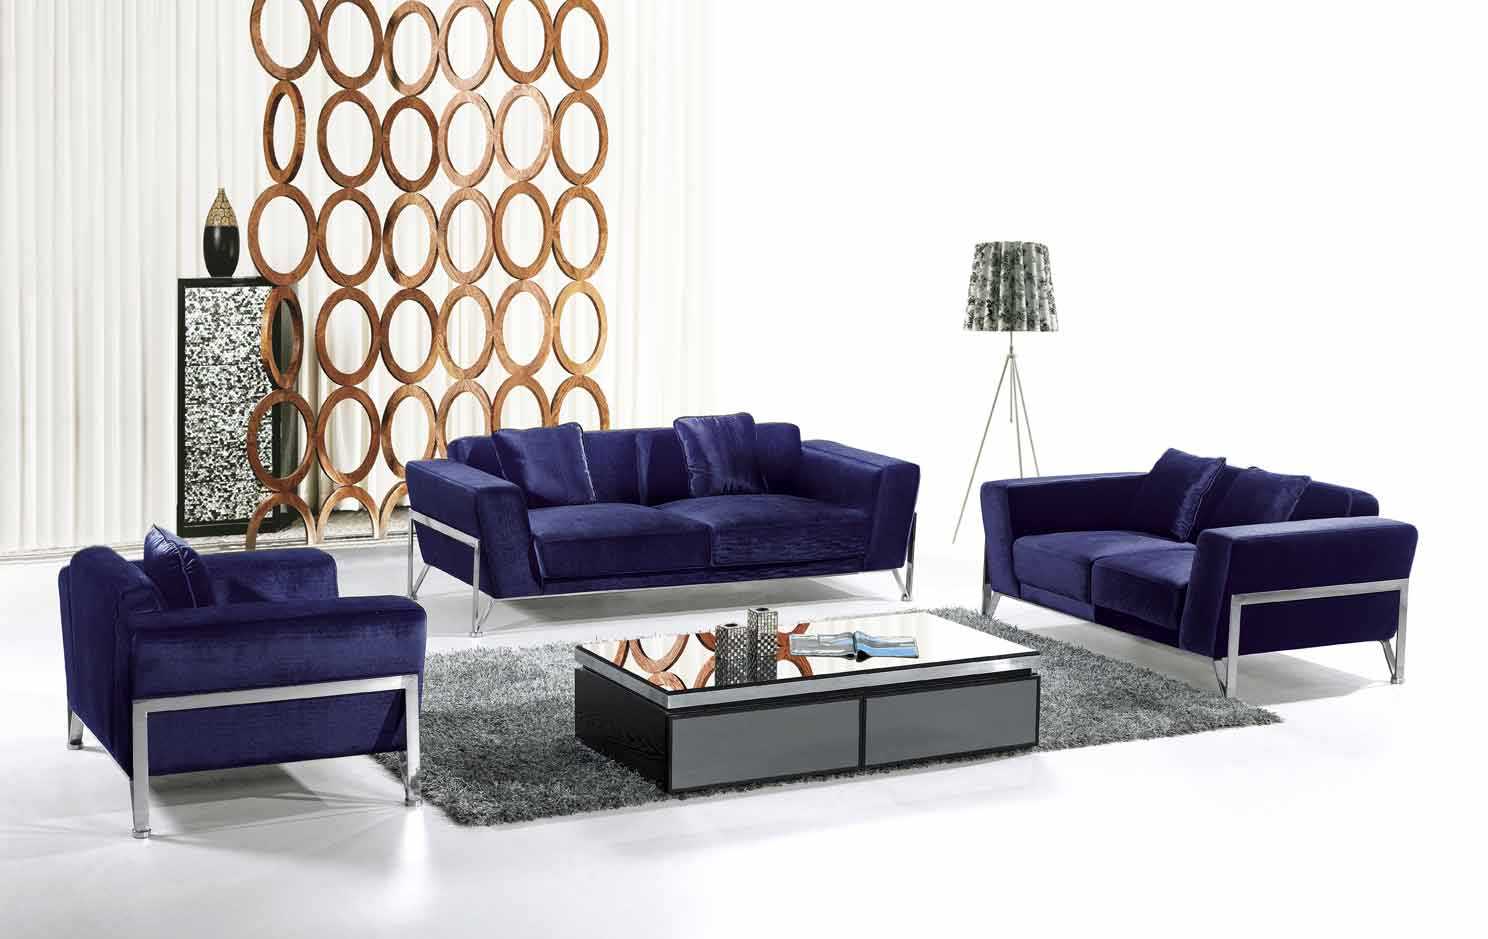 Contemporary Living Room Furniture Fantastic Design Living Room regarding 15 Some of the Coolest Ideas How to Make Cheap Modern Living Room Sets